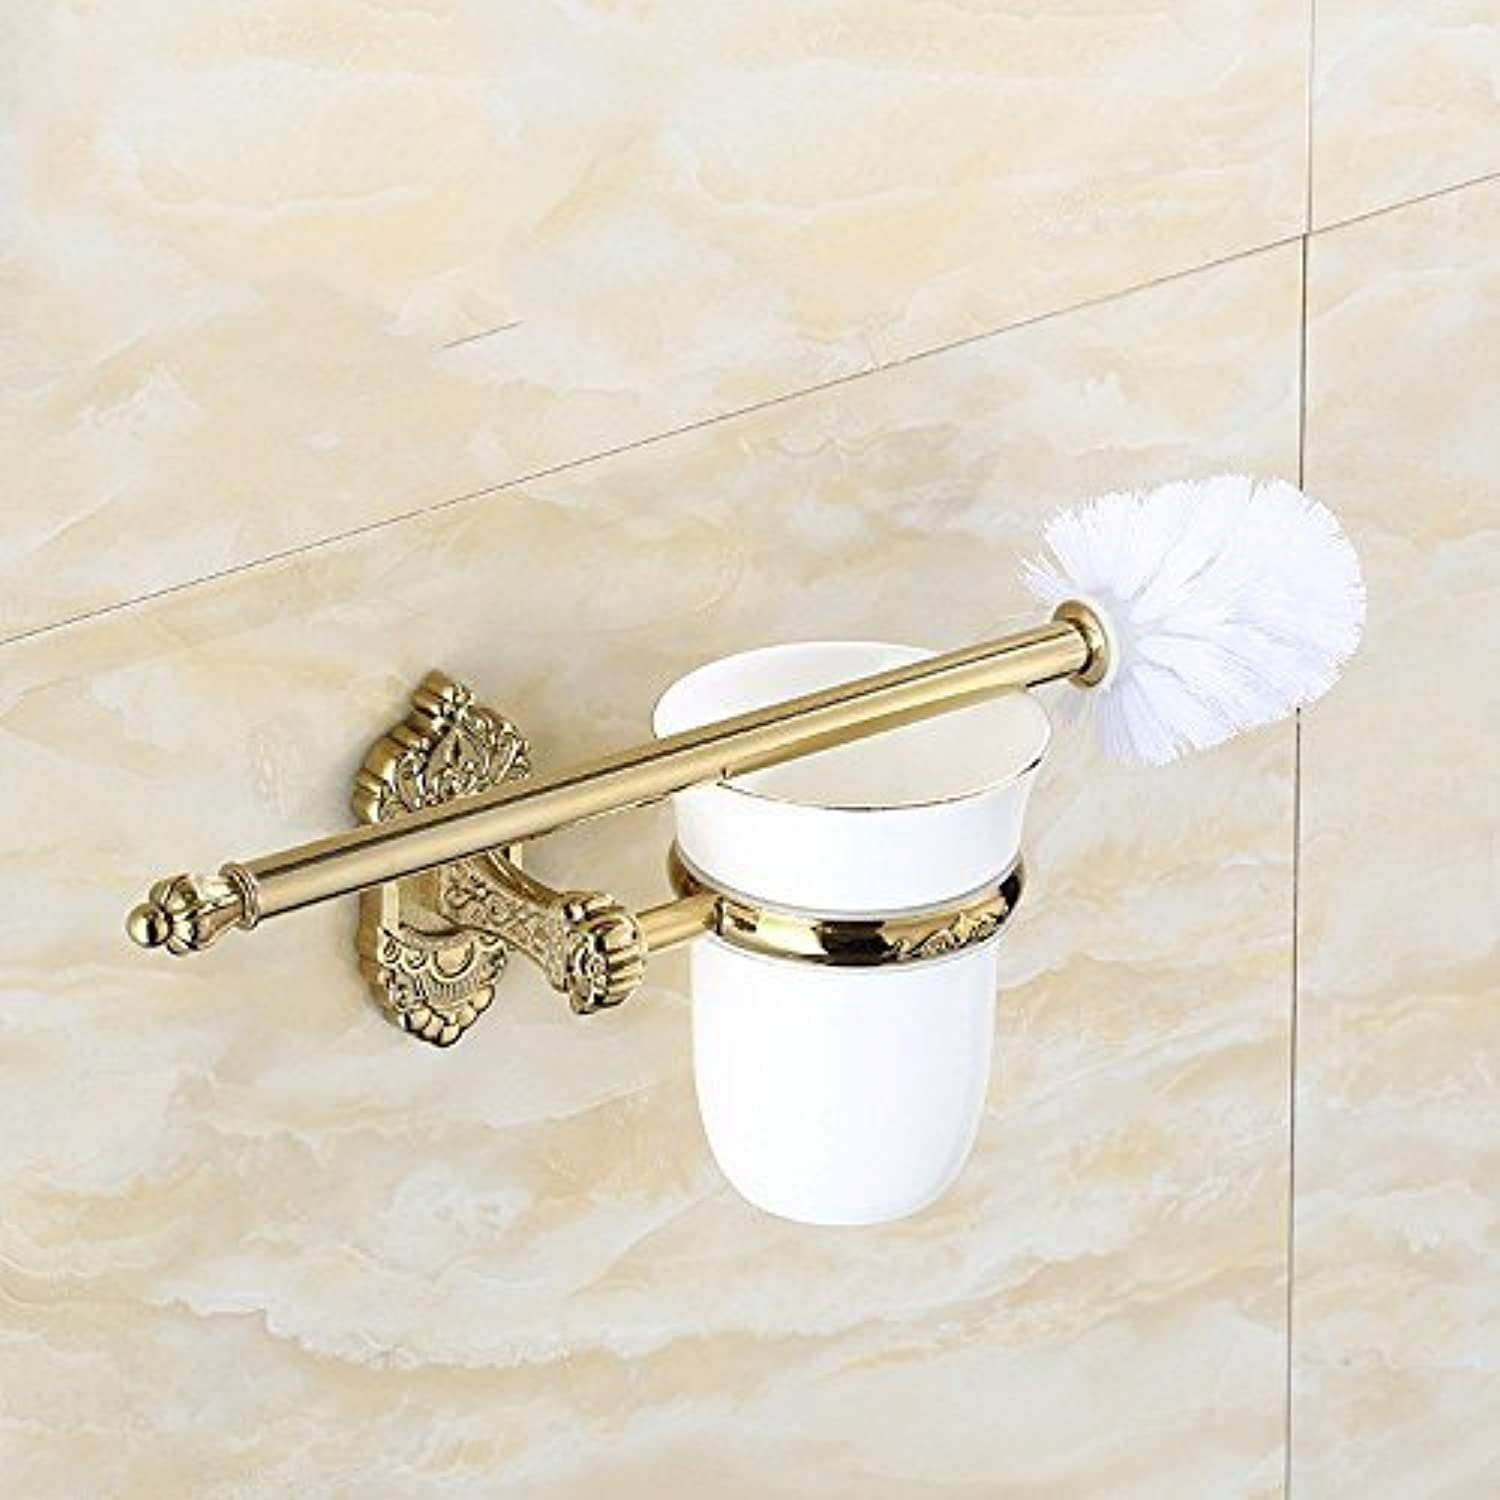 Zircon Zxytoilet Stainless Steel Toilet Bathroom Toilet Brush in Ceramics from The Cup Chassis